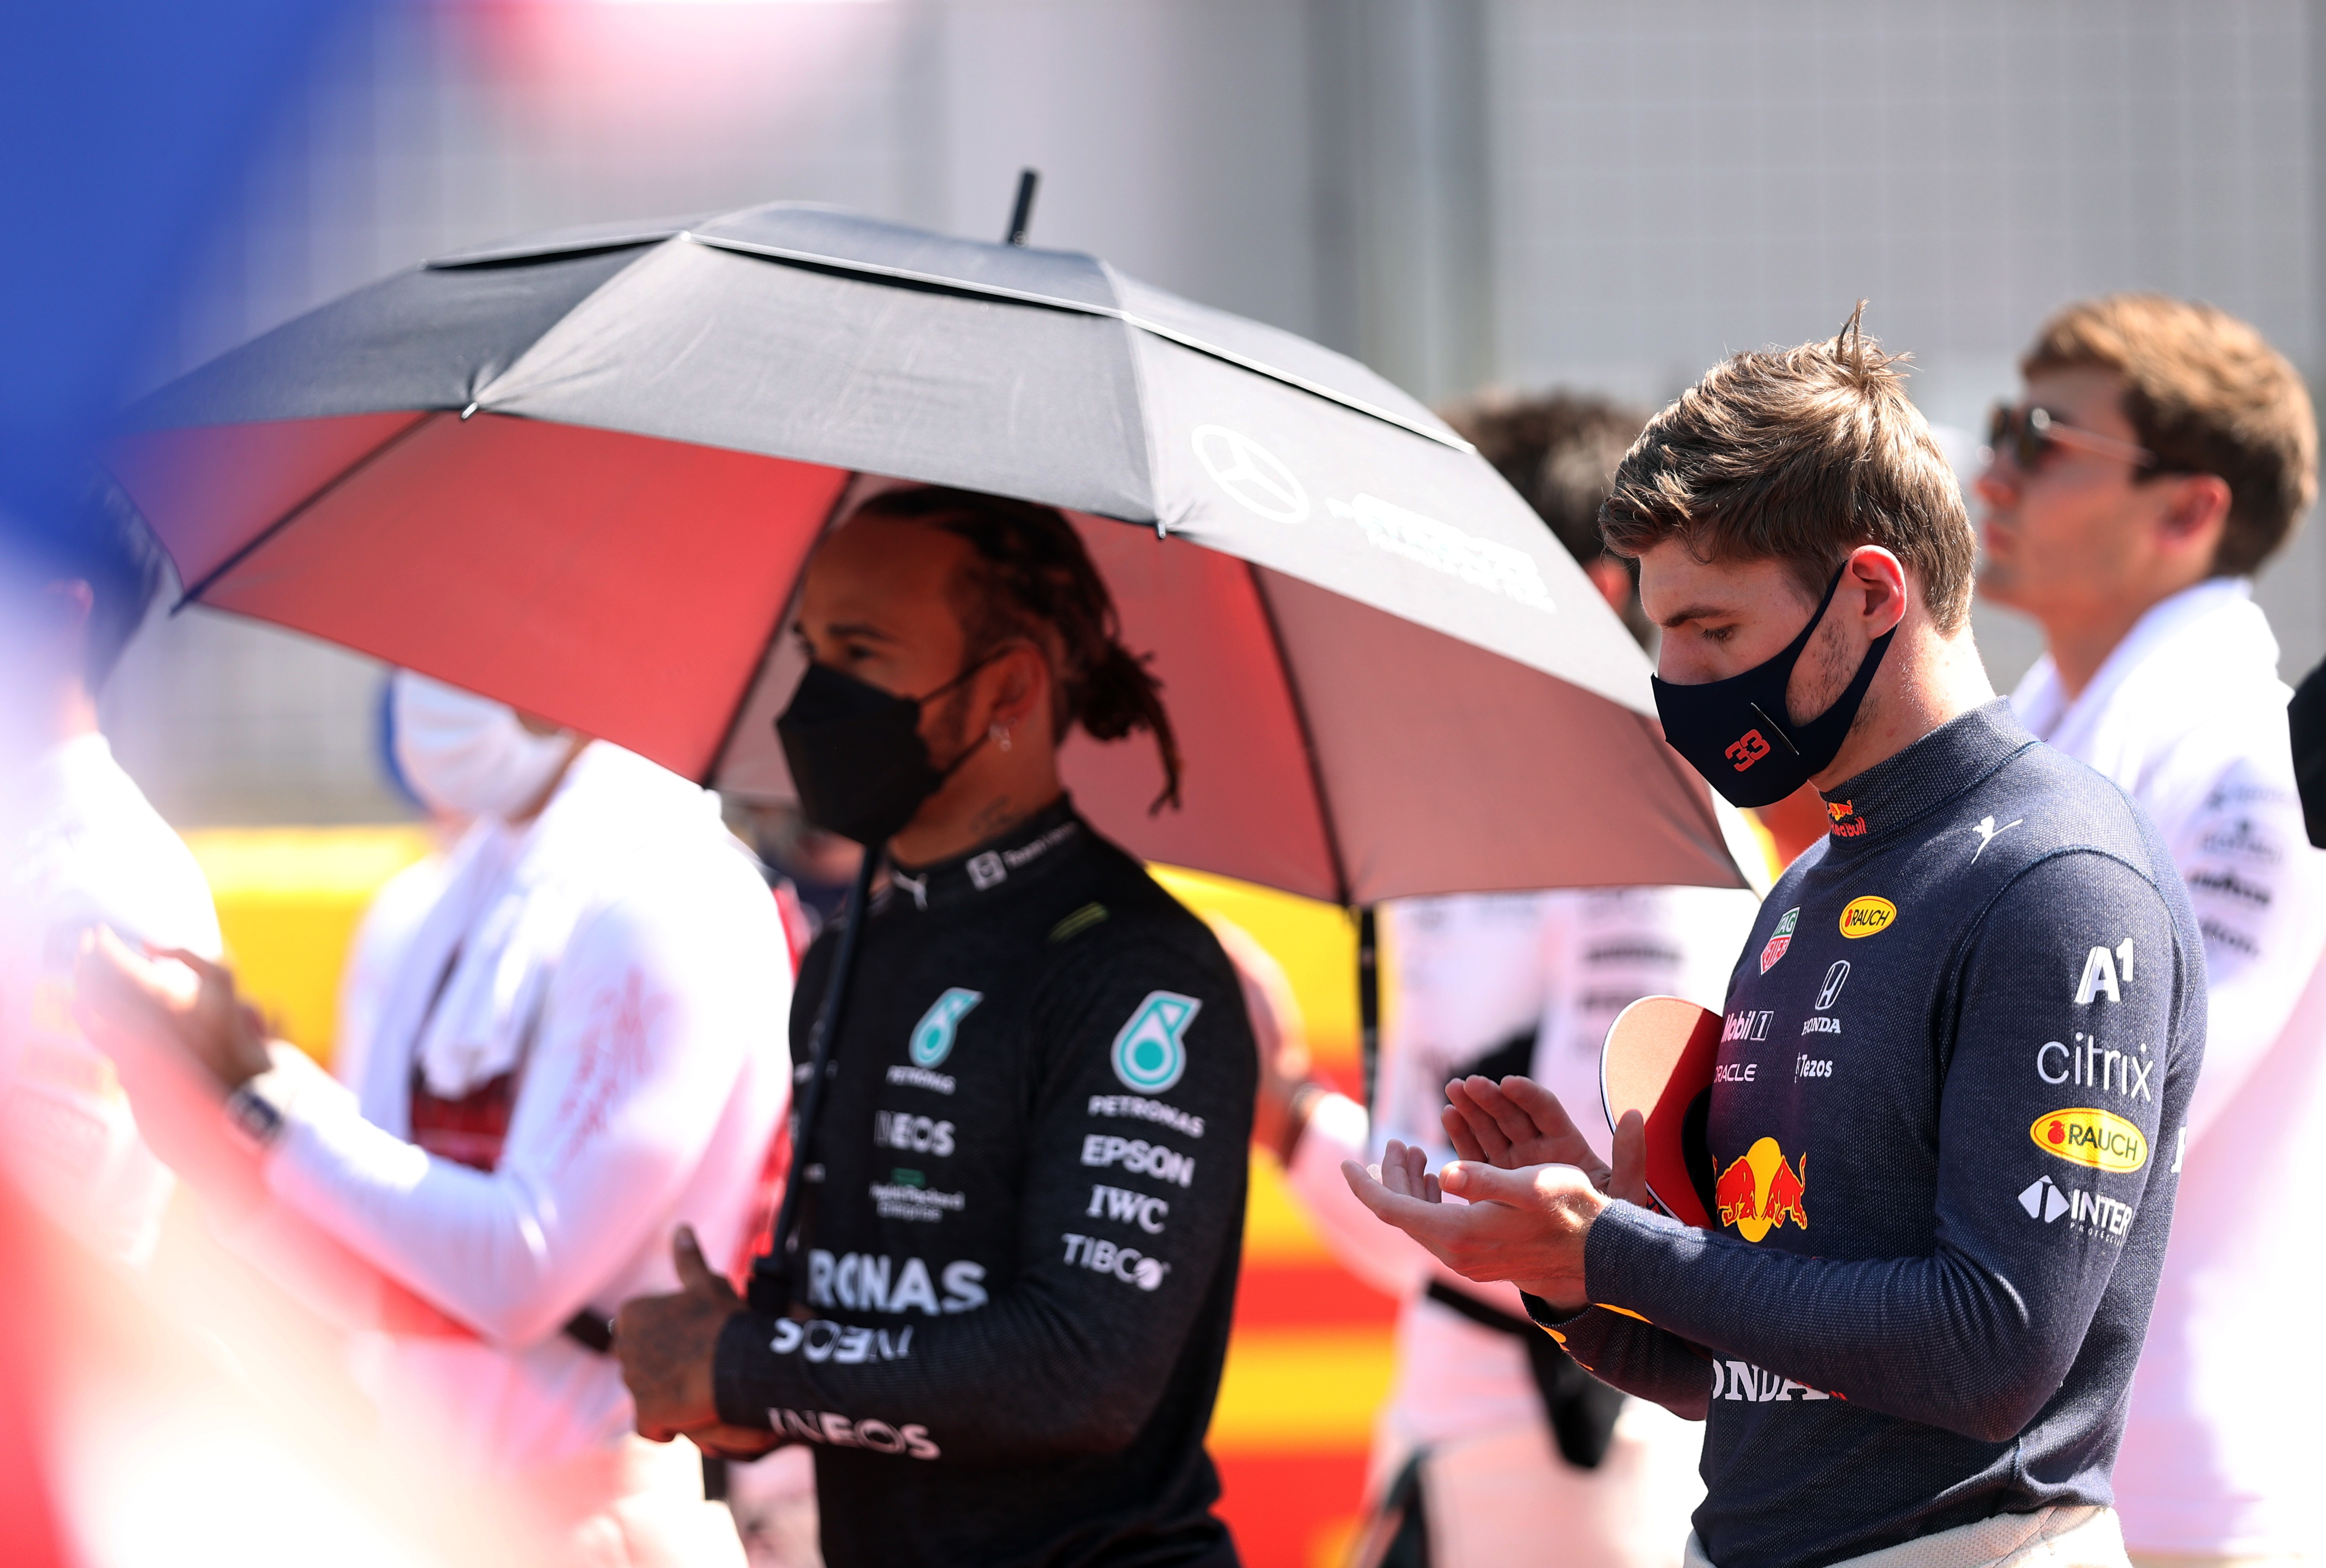 Formula One F1 - British Grand Prix - Silverstone Circuit, Silverstone, Britain - July 18, 2021 Mercedes' Lewis Hamilton and Red Bull's Max Verstappen before the race Pool via REUTERS/Lars Baron/File Photo